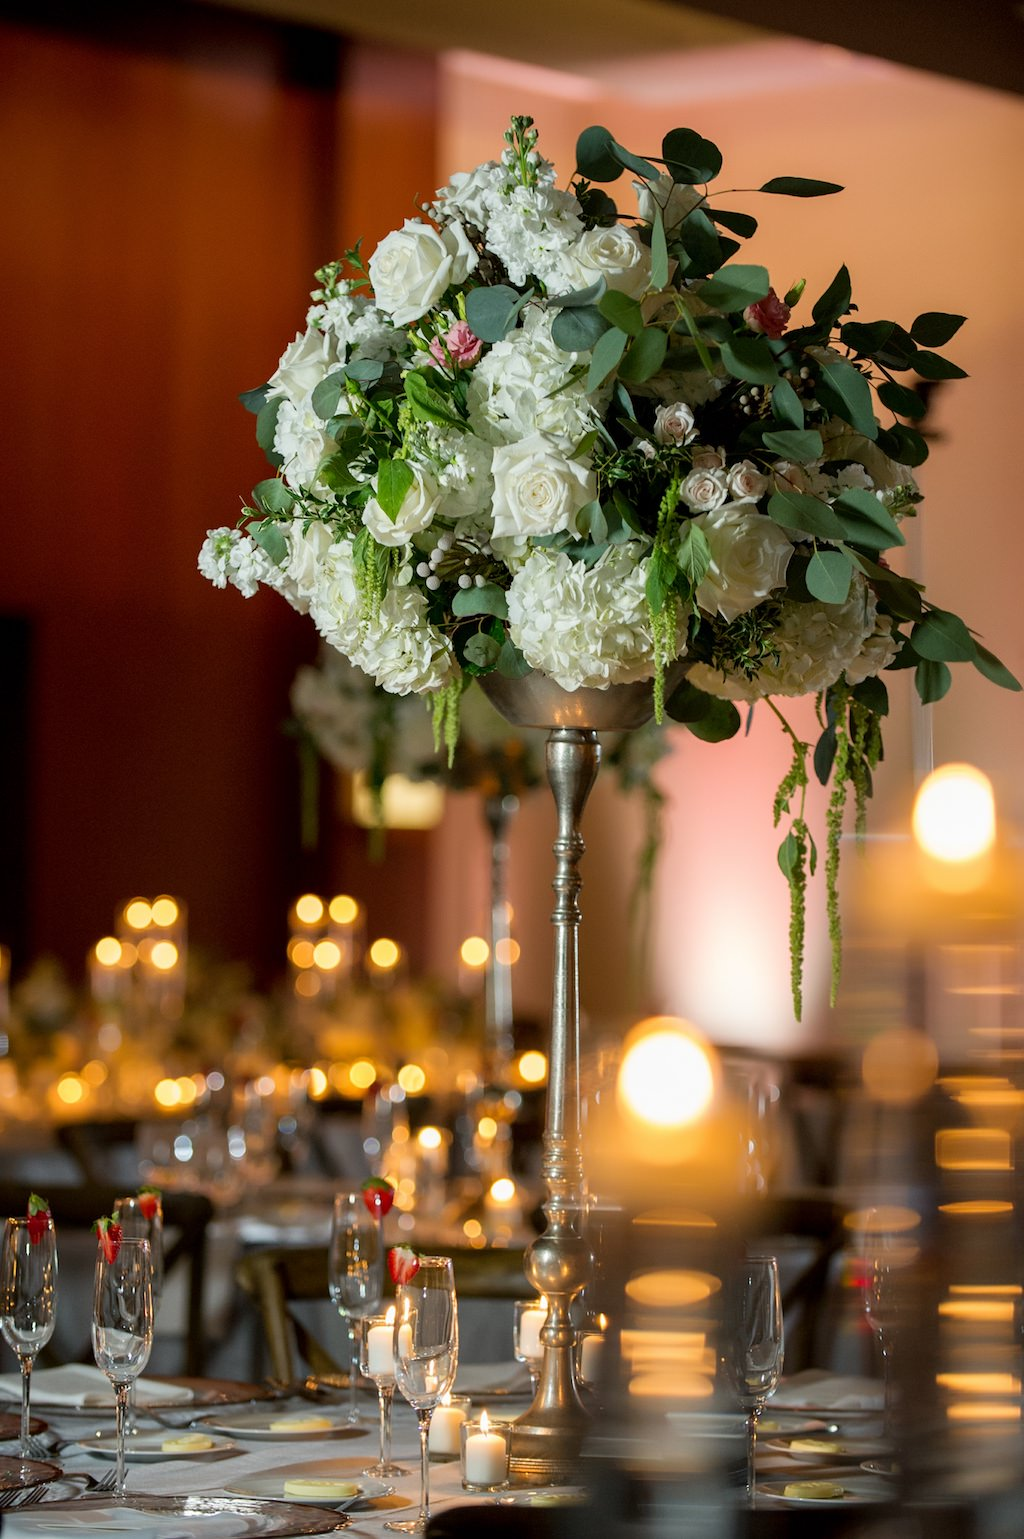 Elegant, Romantic Ballroom Wedding Reception with Long Feasting Tables, Low White Centerpieces, and Candles